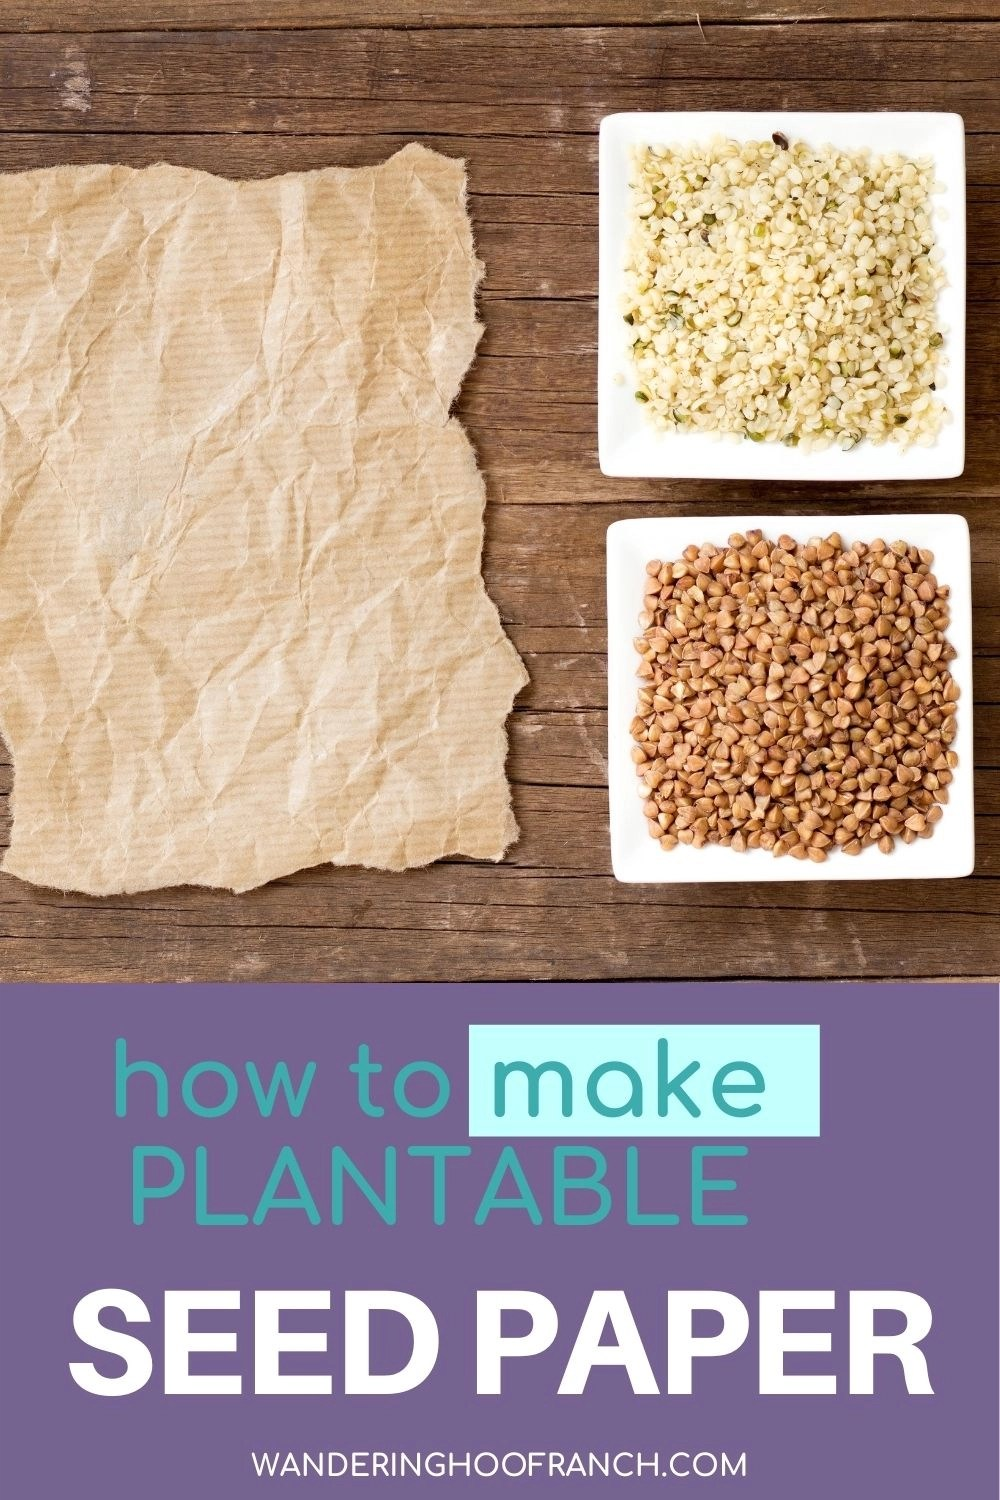 plantable seed paper pin image